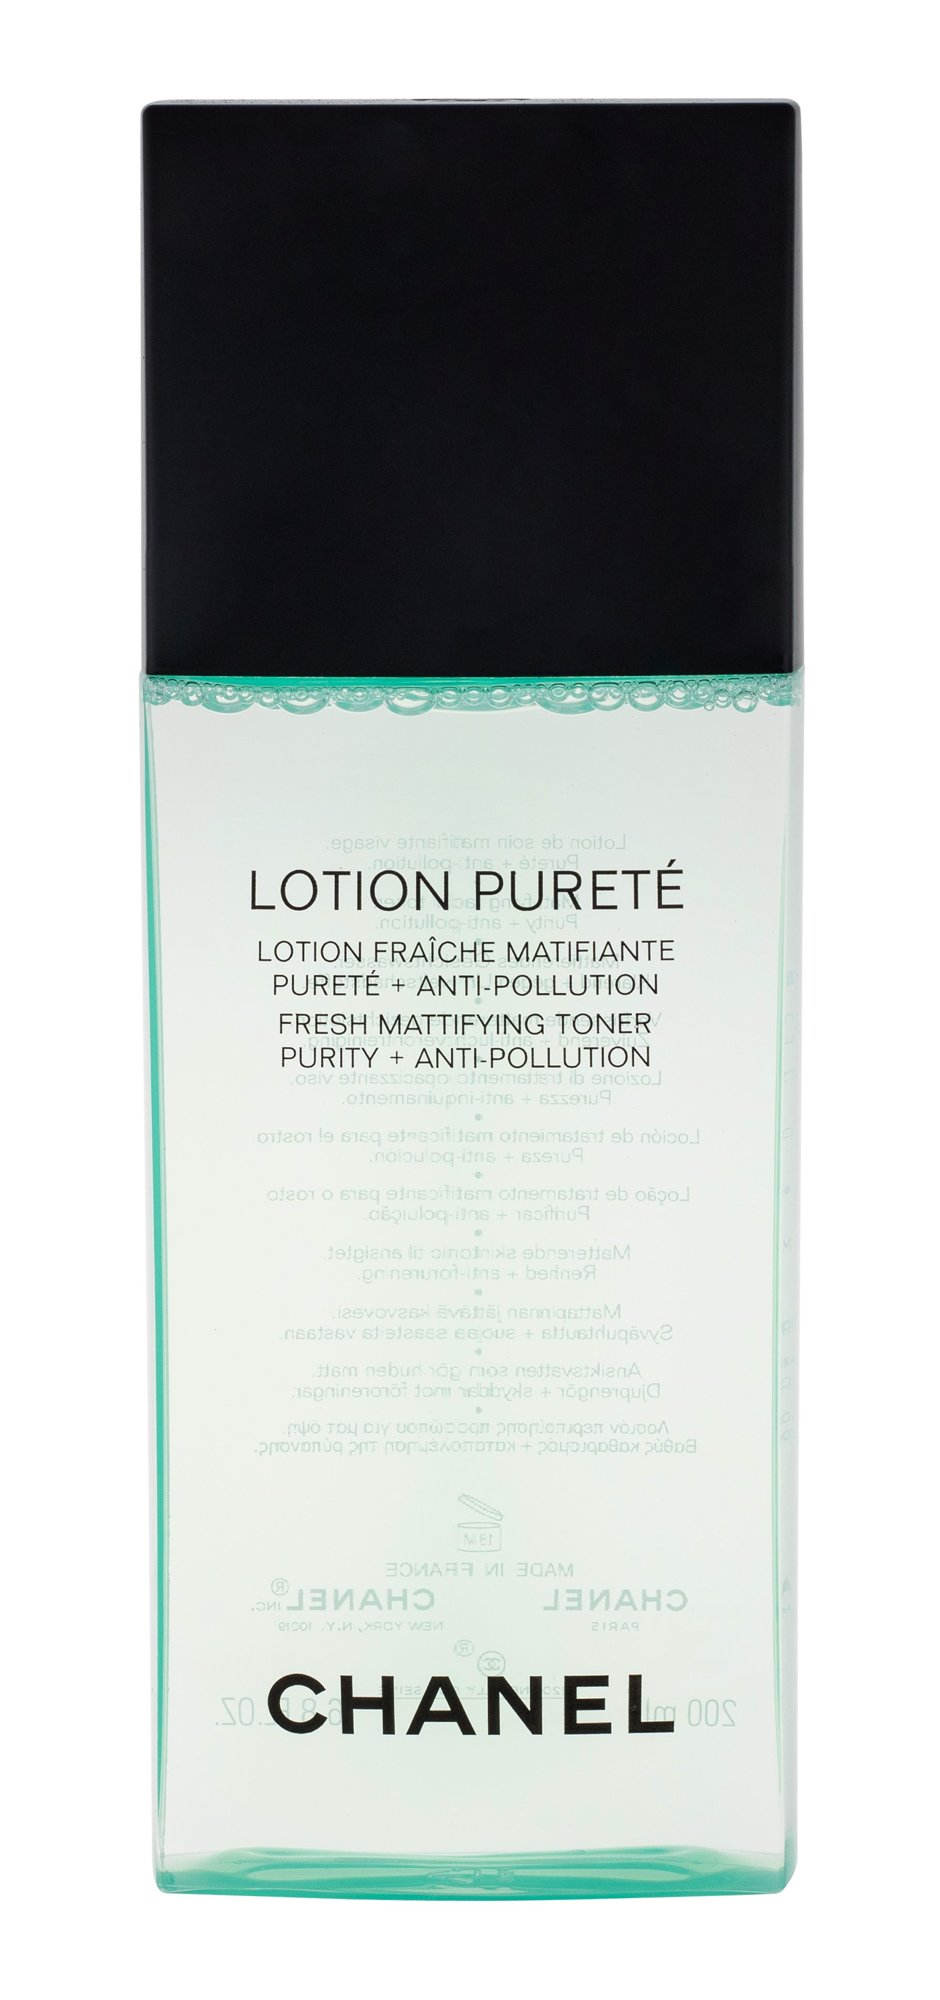 Chanel Lotion Purete Anti Pollution Cosmetic 200ml